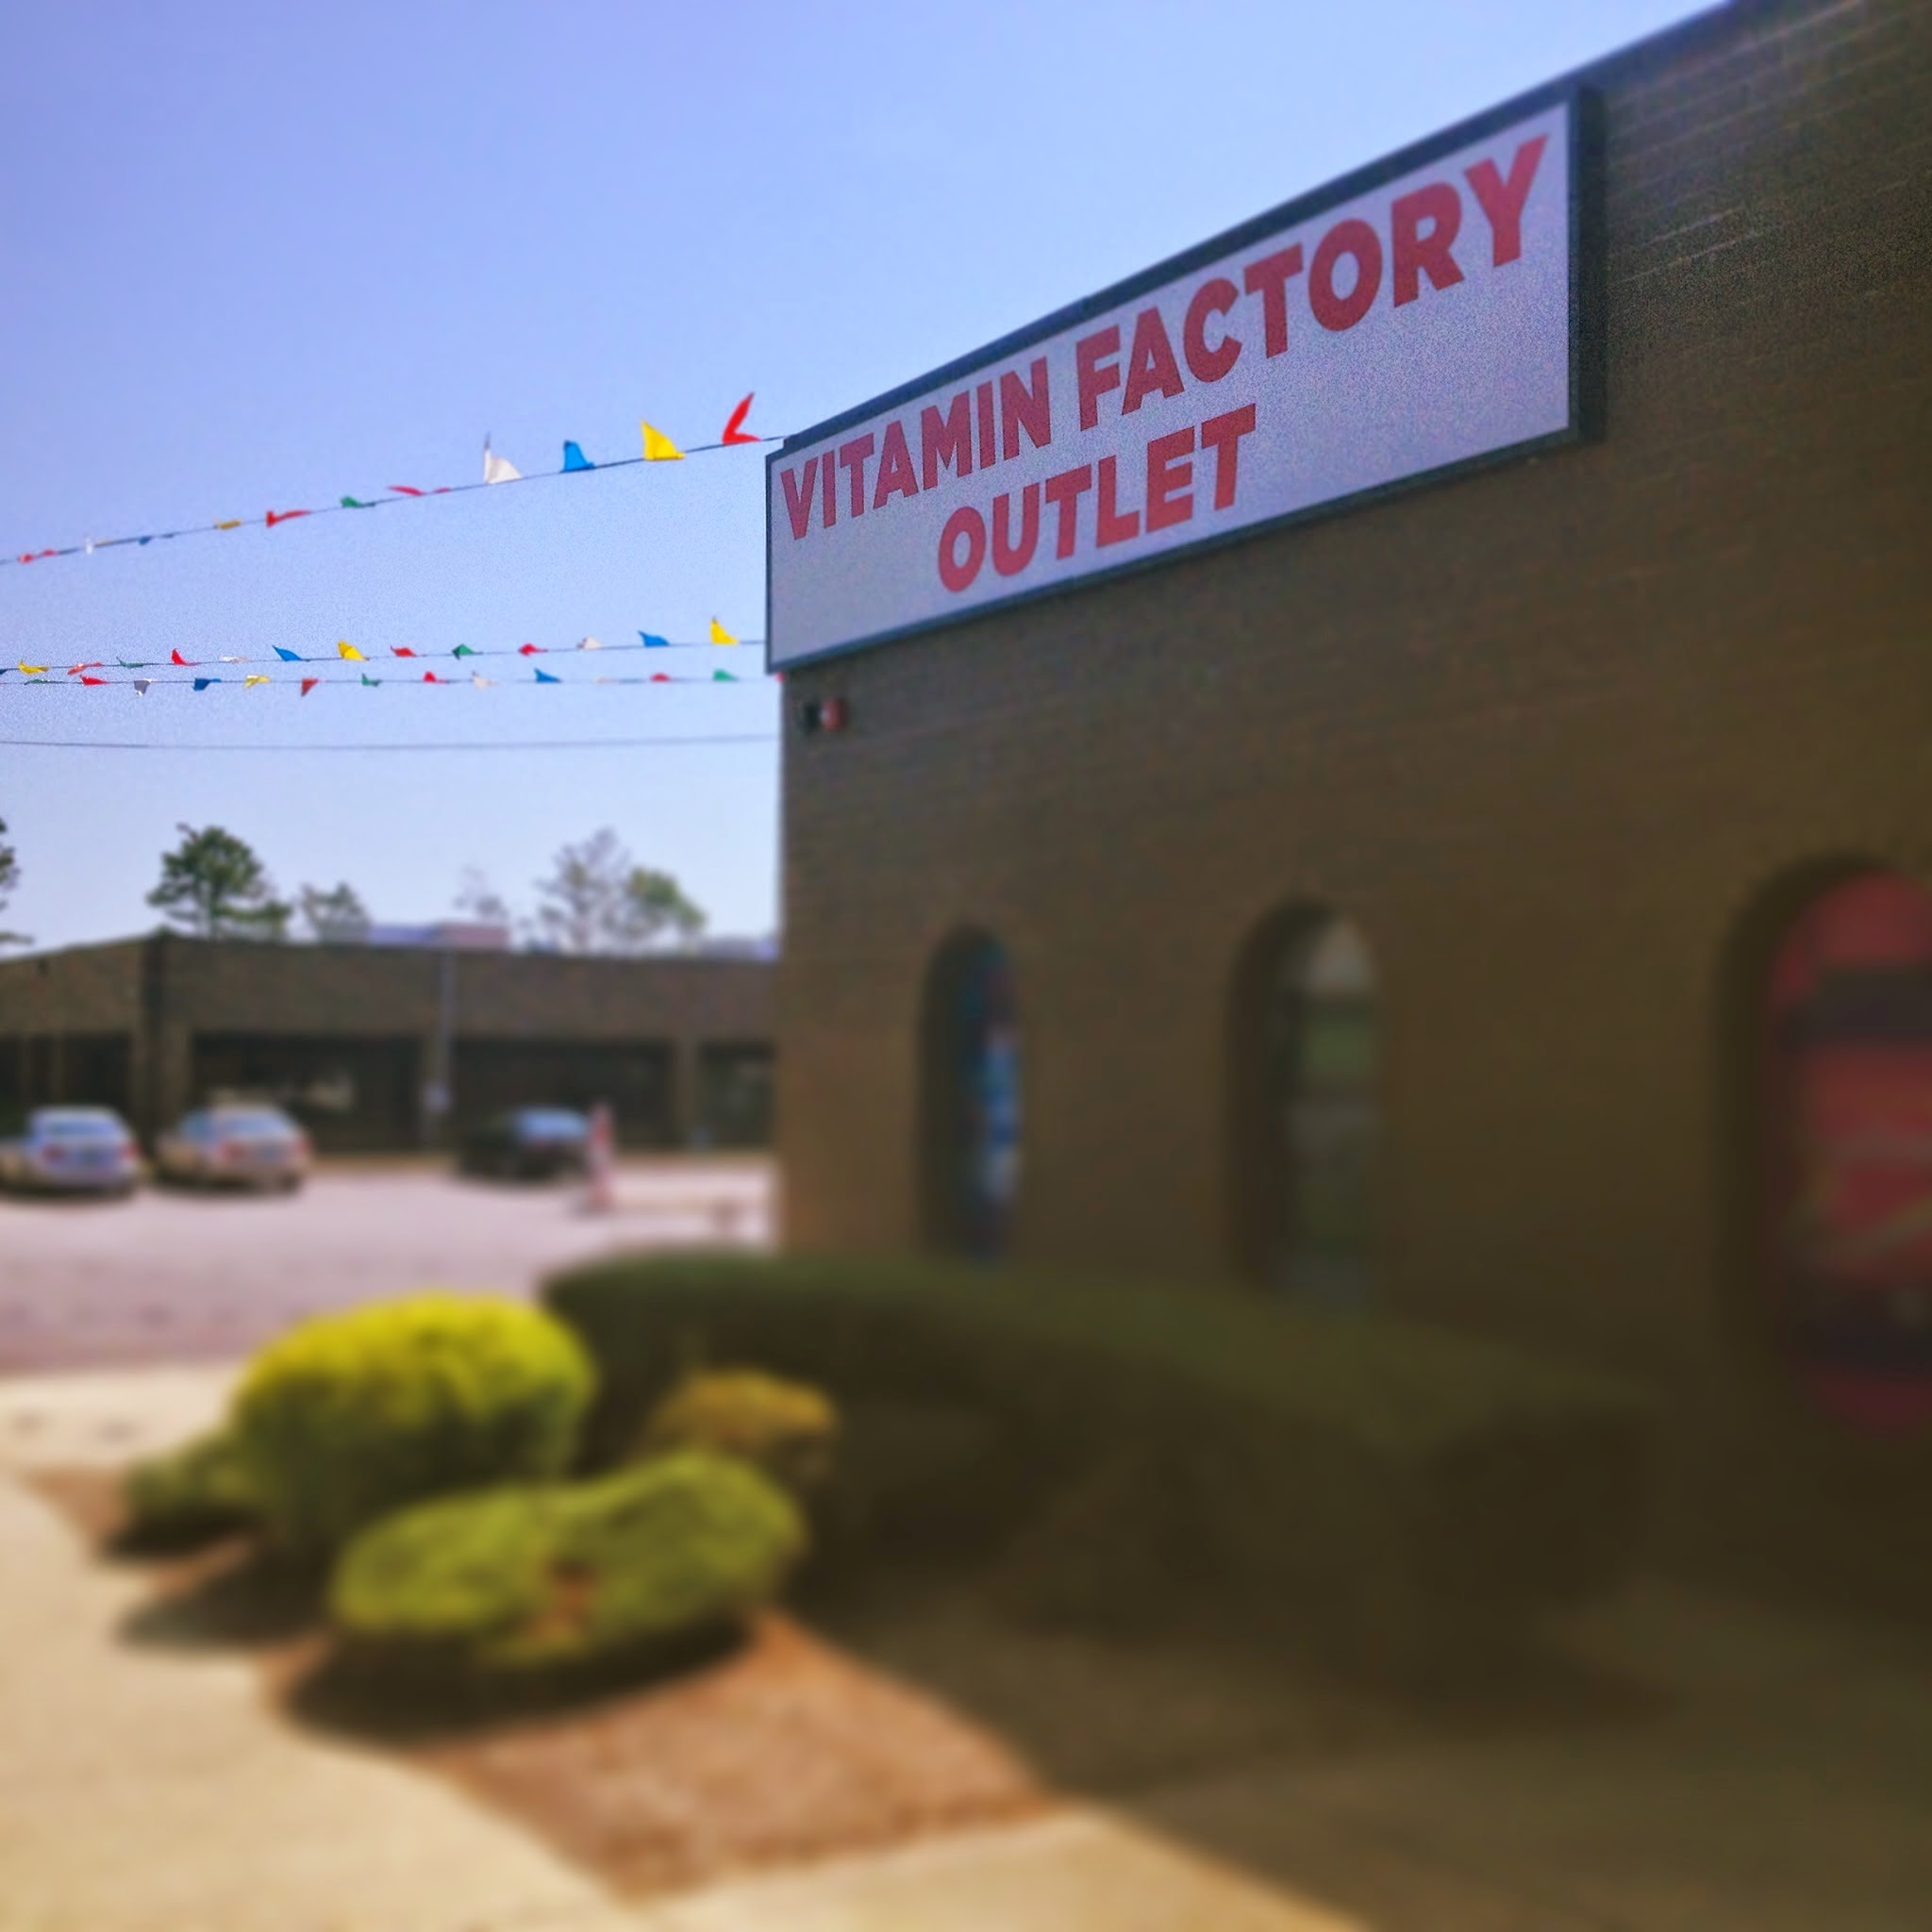 Photo: Hey, Long Island friends! Have you made it to our Vitamin Factory Outlet yet? What did you think??  Come visit us at: 2120 Smithtown Avenue Ronkonkoma, NY 11779  #pipingrock #ronkonkoma #longisland #vitaminoutlet